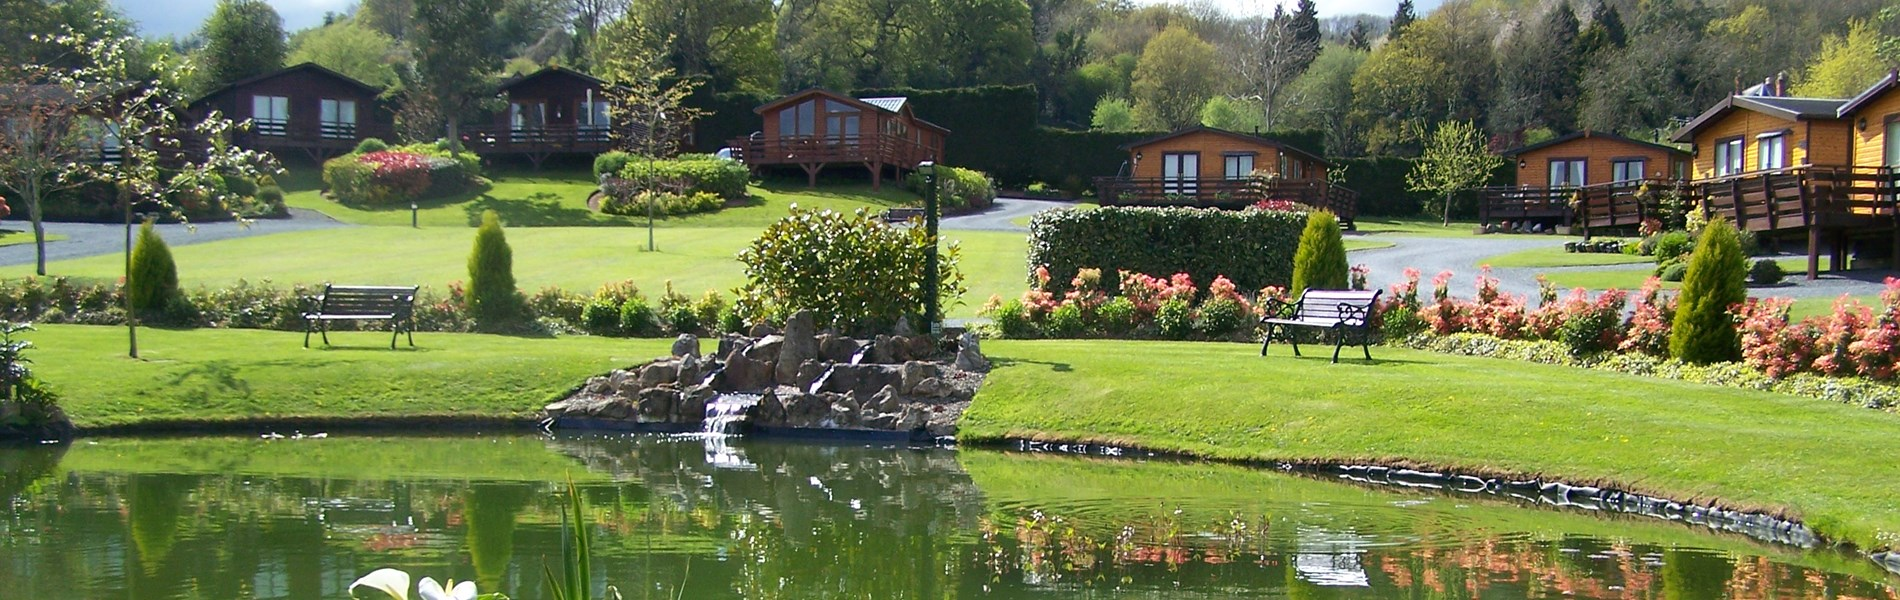 Orleton Rise Holiday Home Park Lodges set in beautiful countryside